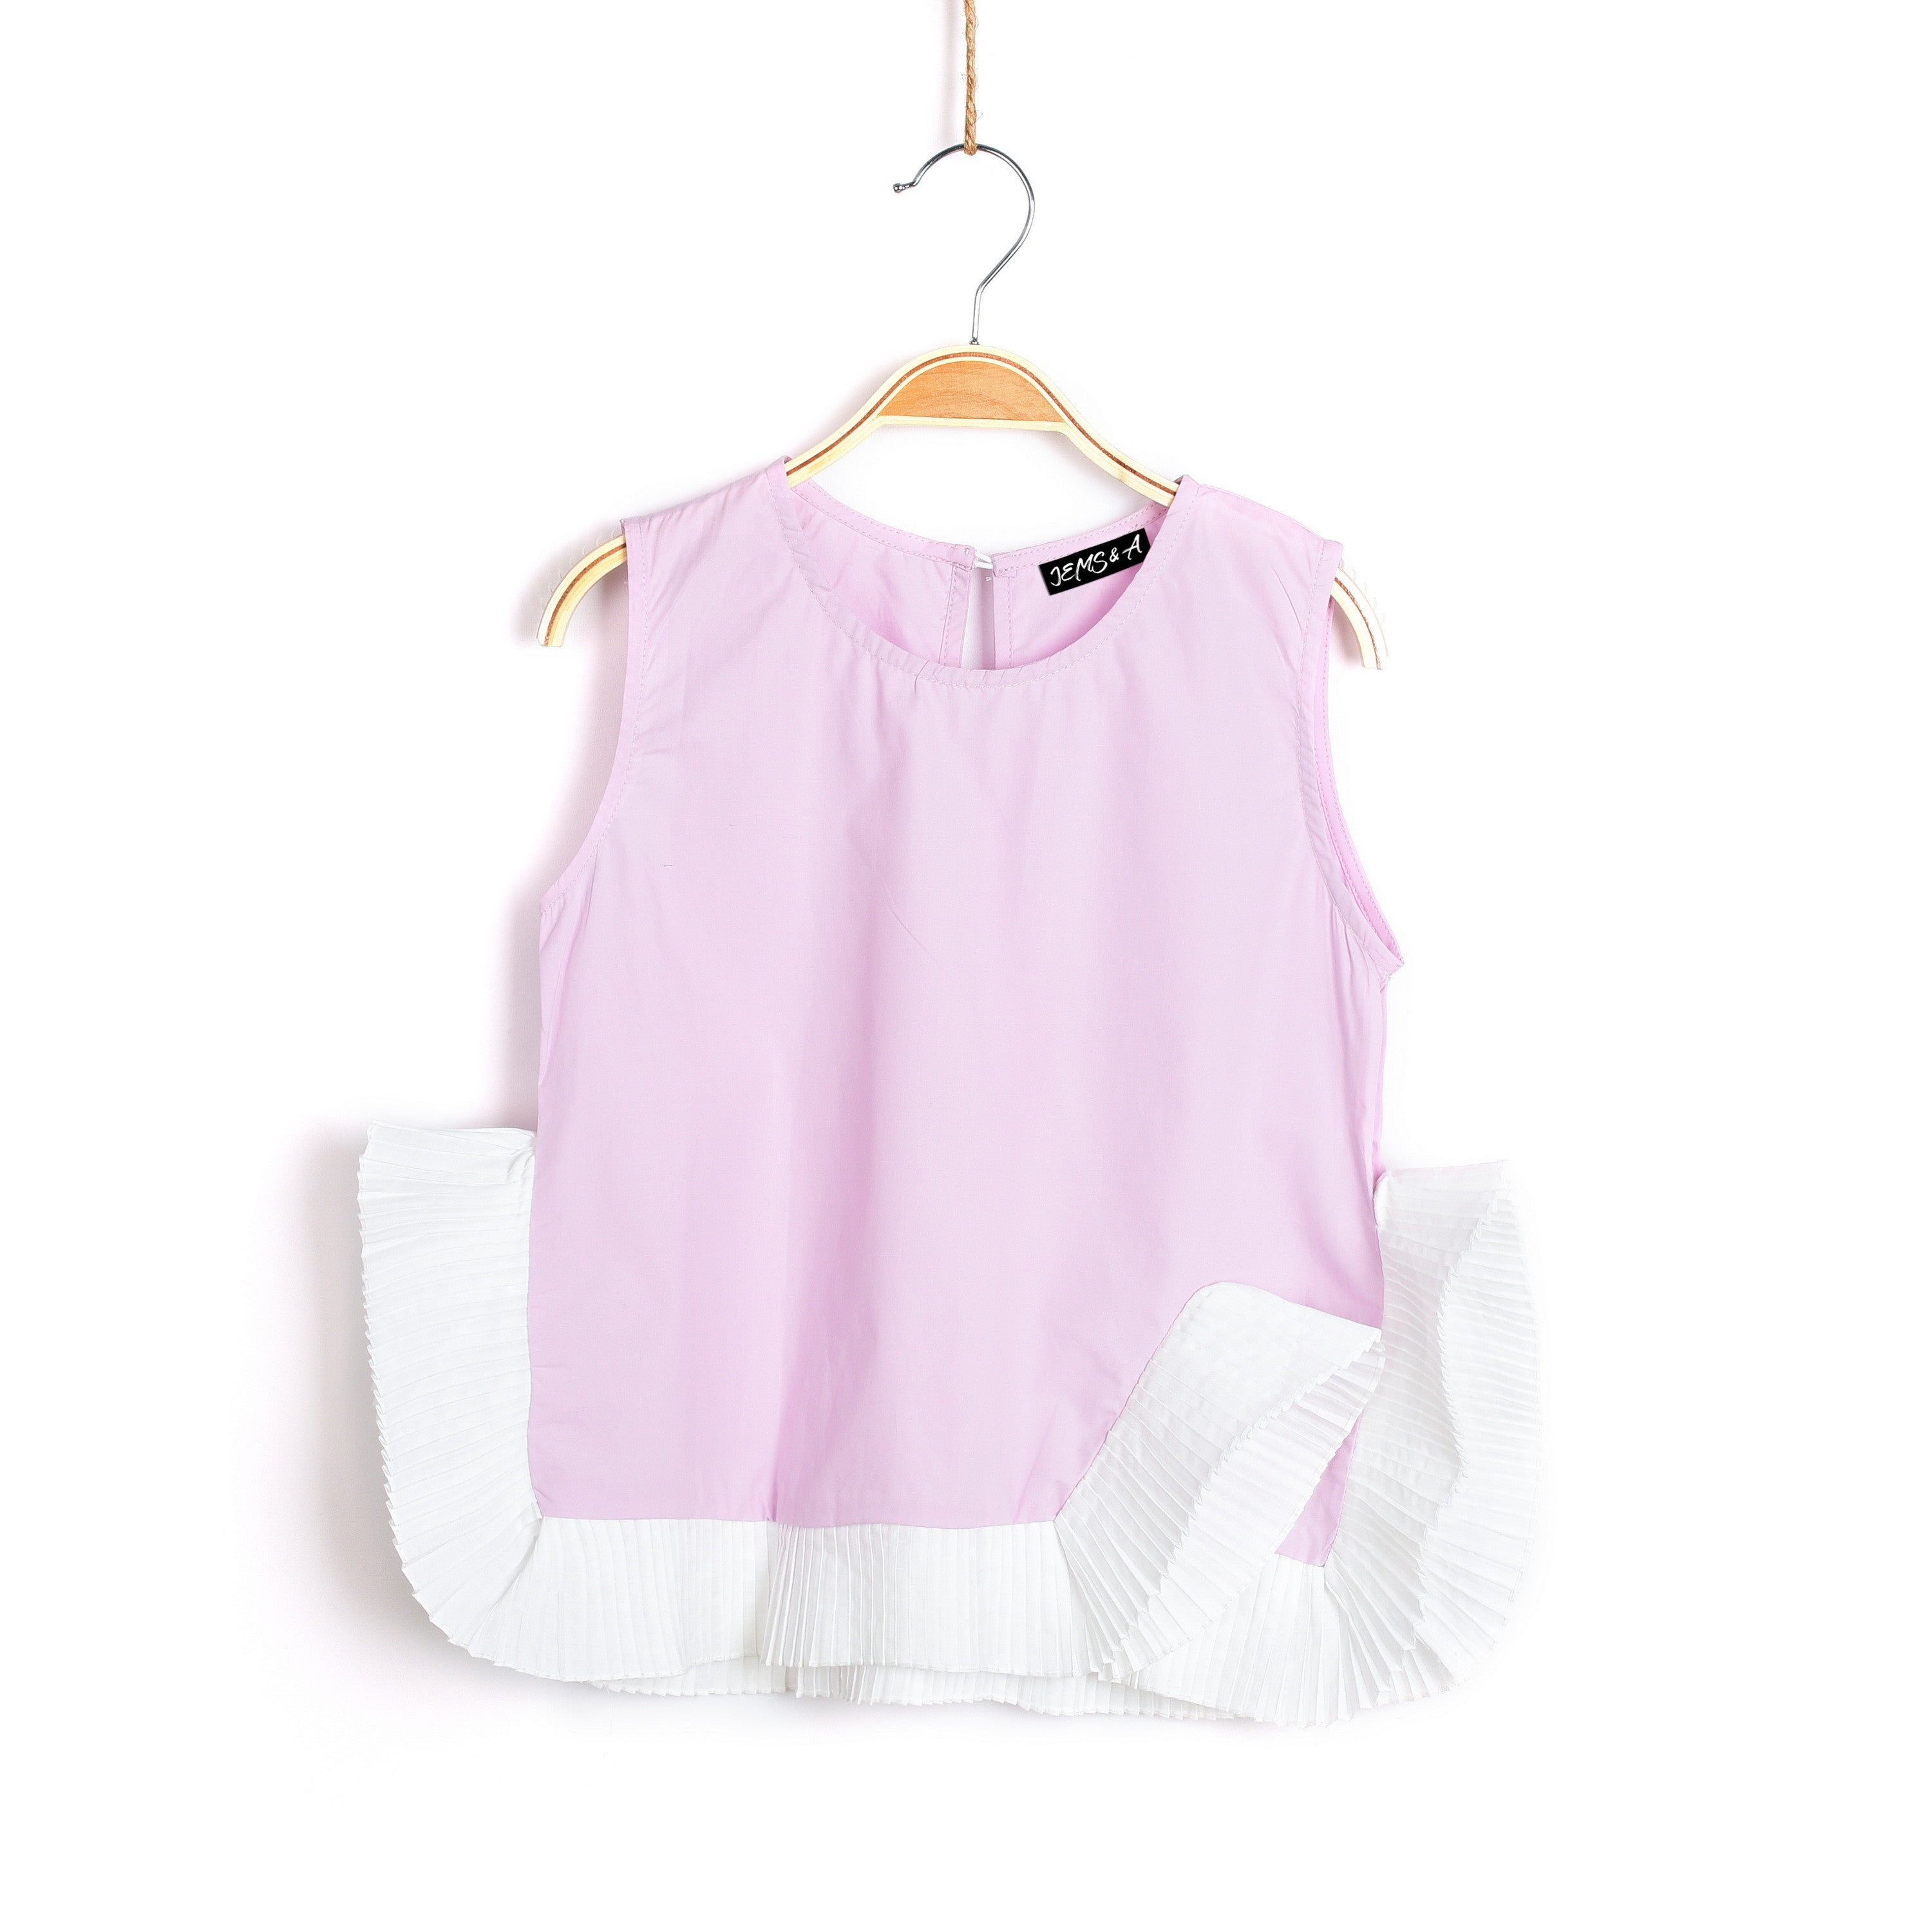 Roxy N Ruffles Top Baby Pink Girls boutique outfits